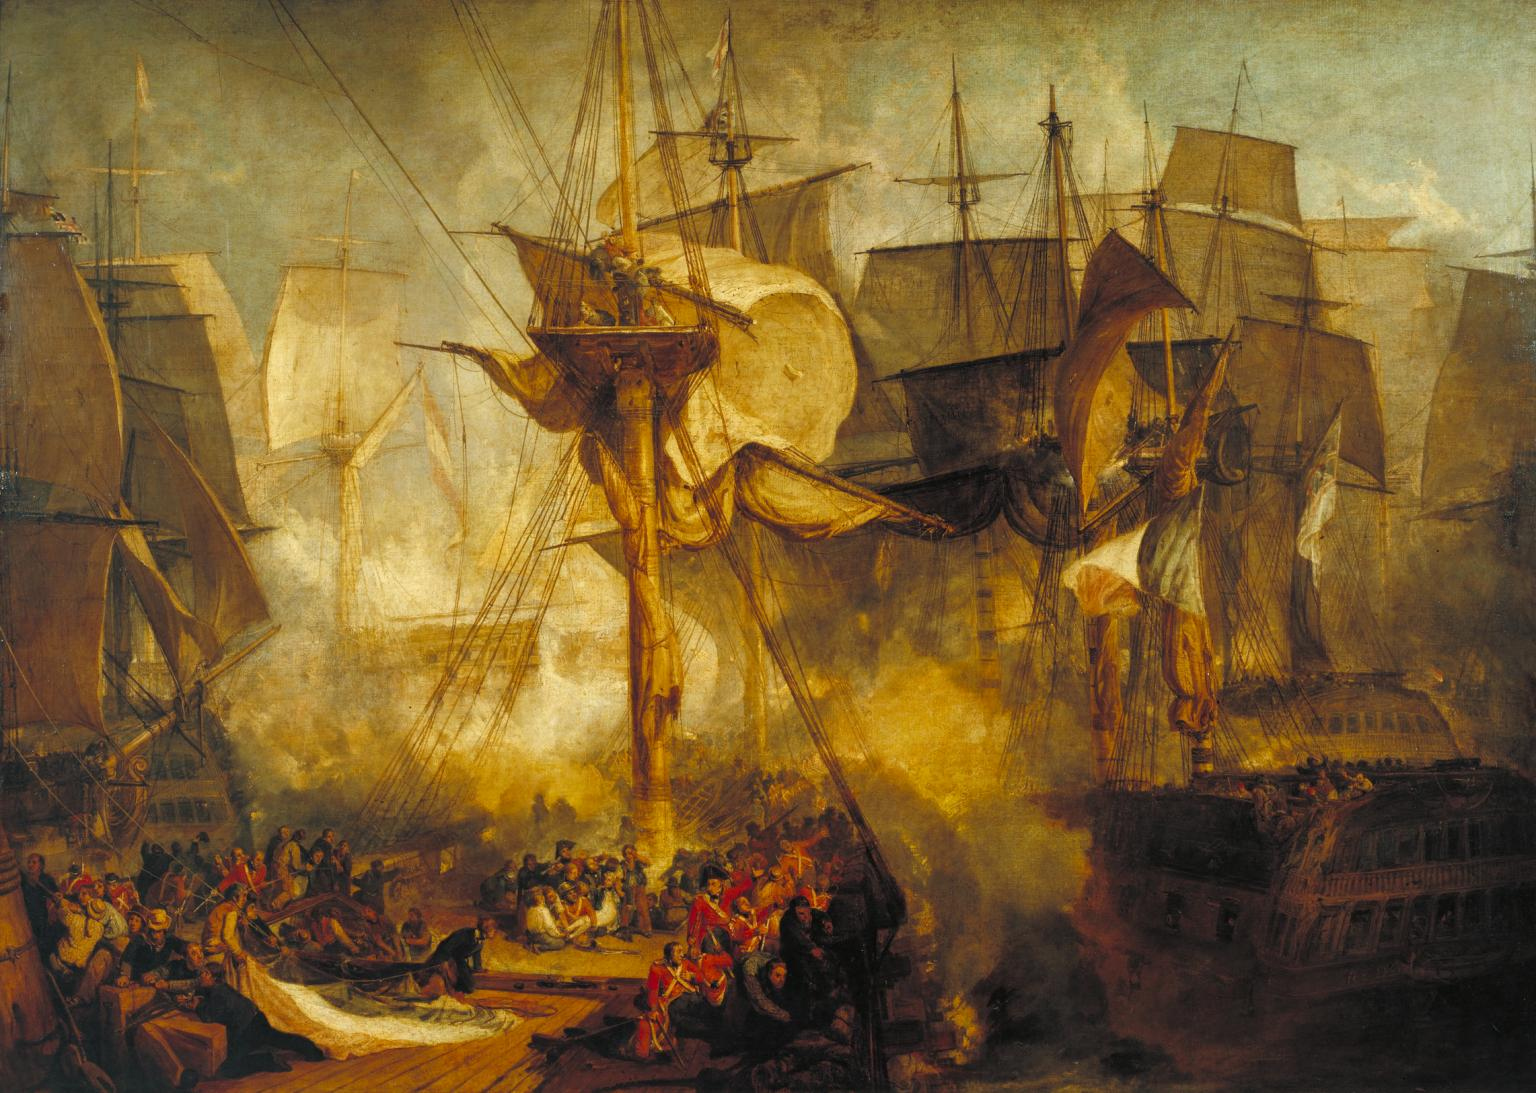 The Battle of Trafalgar, as Seen from the Mizen Starboard Shrouds of the Victory 1806-8 by Joseph Mallord William Turner 1775-1851